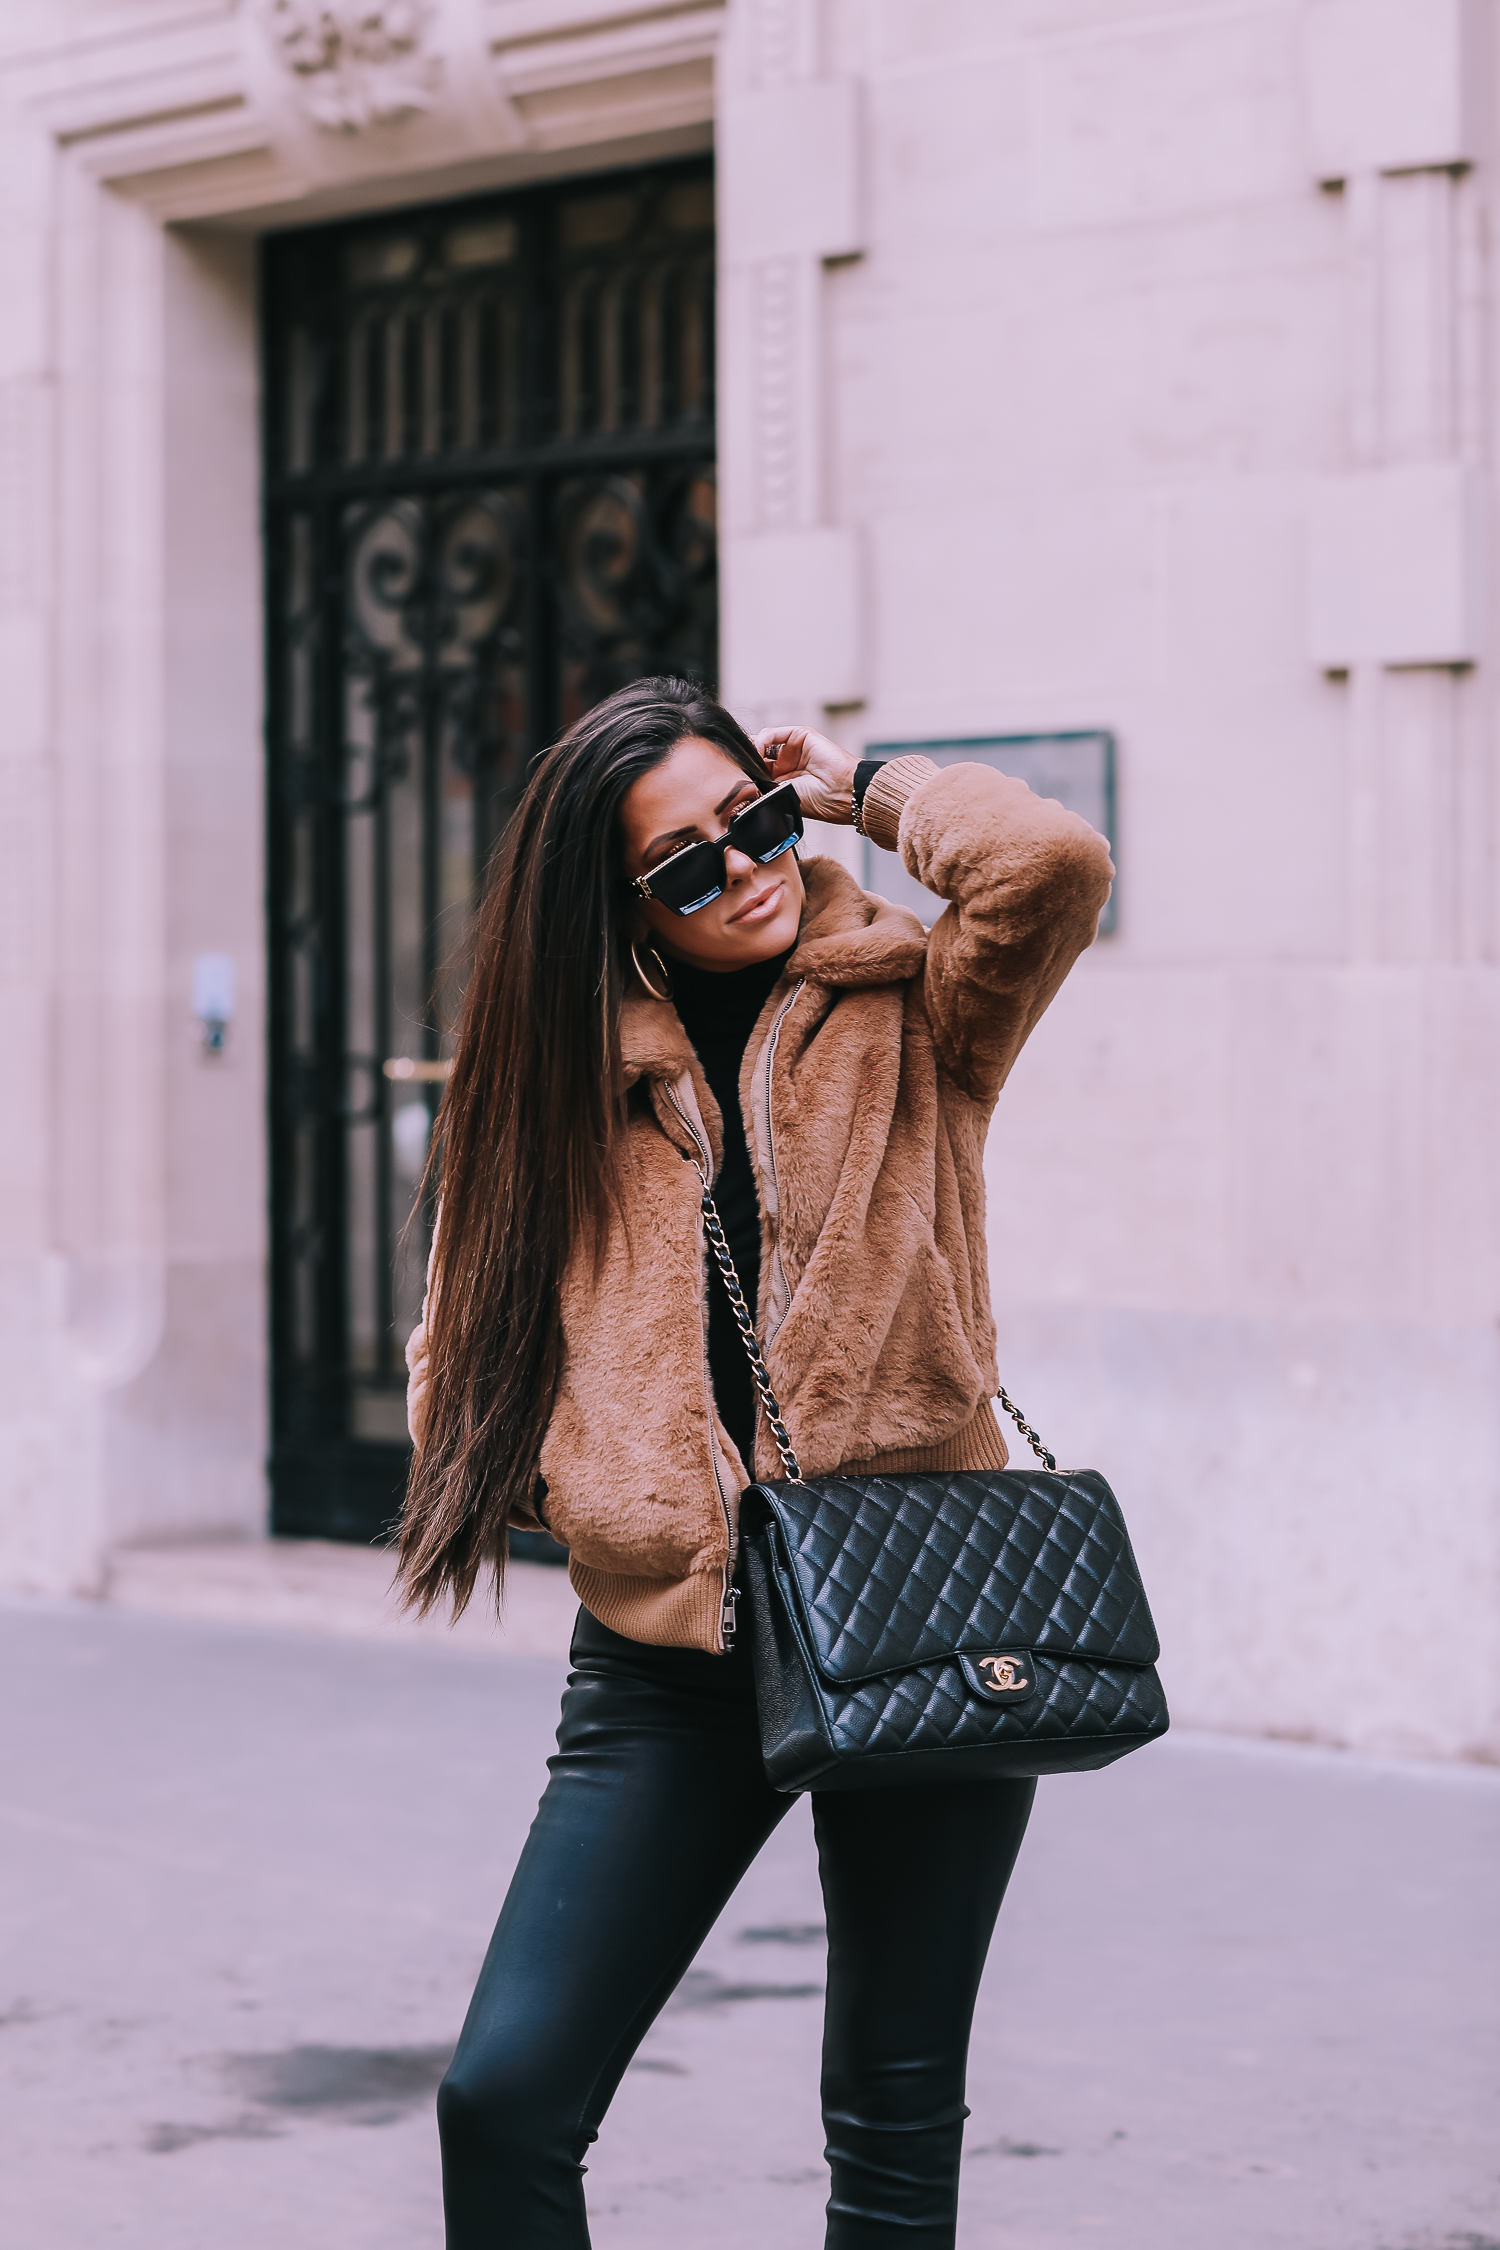 paris fall fashion 2019, fall fashion 2019, banana republic fall outfits 2019, paris outfit ideas fall and winter, what to wear in paris in october november, emily ann gemma-2